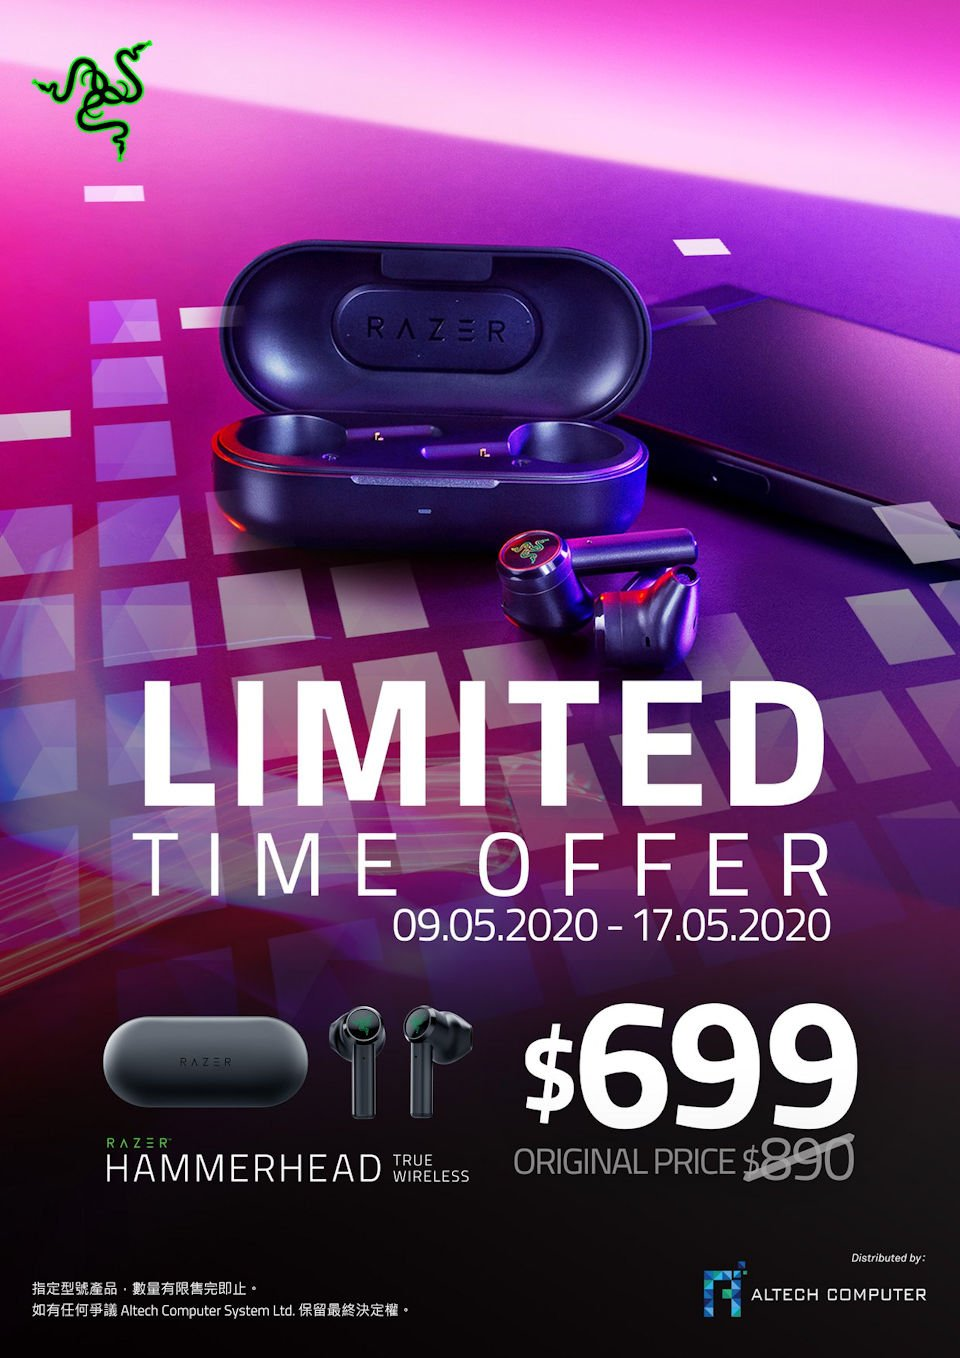 Wireless Headset Promo